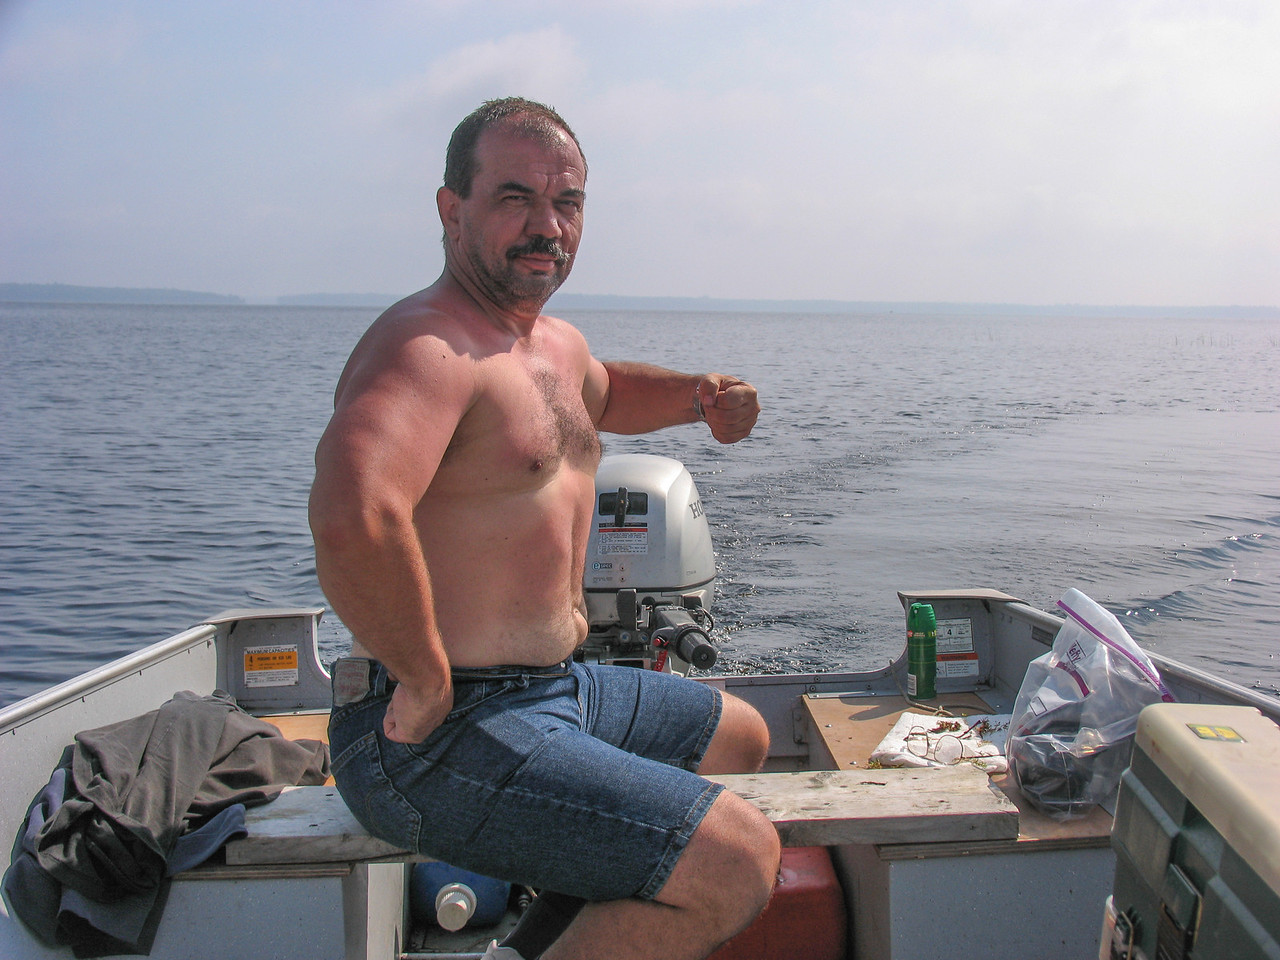 Dinu showing off his recent weight loss - Grand Lake Stream - July 2006